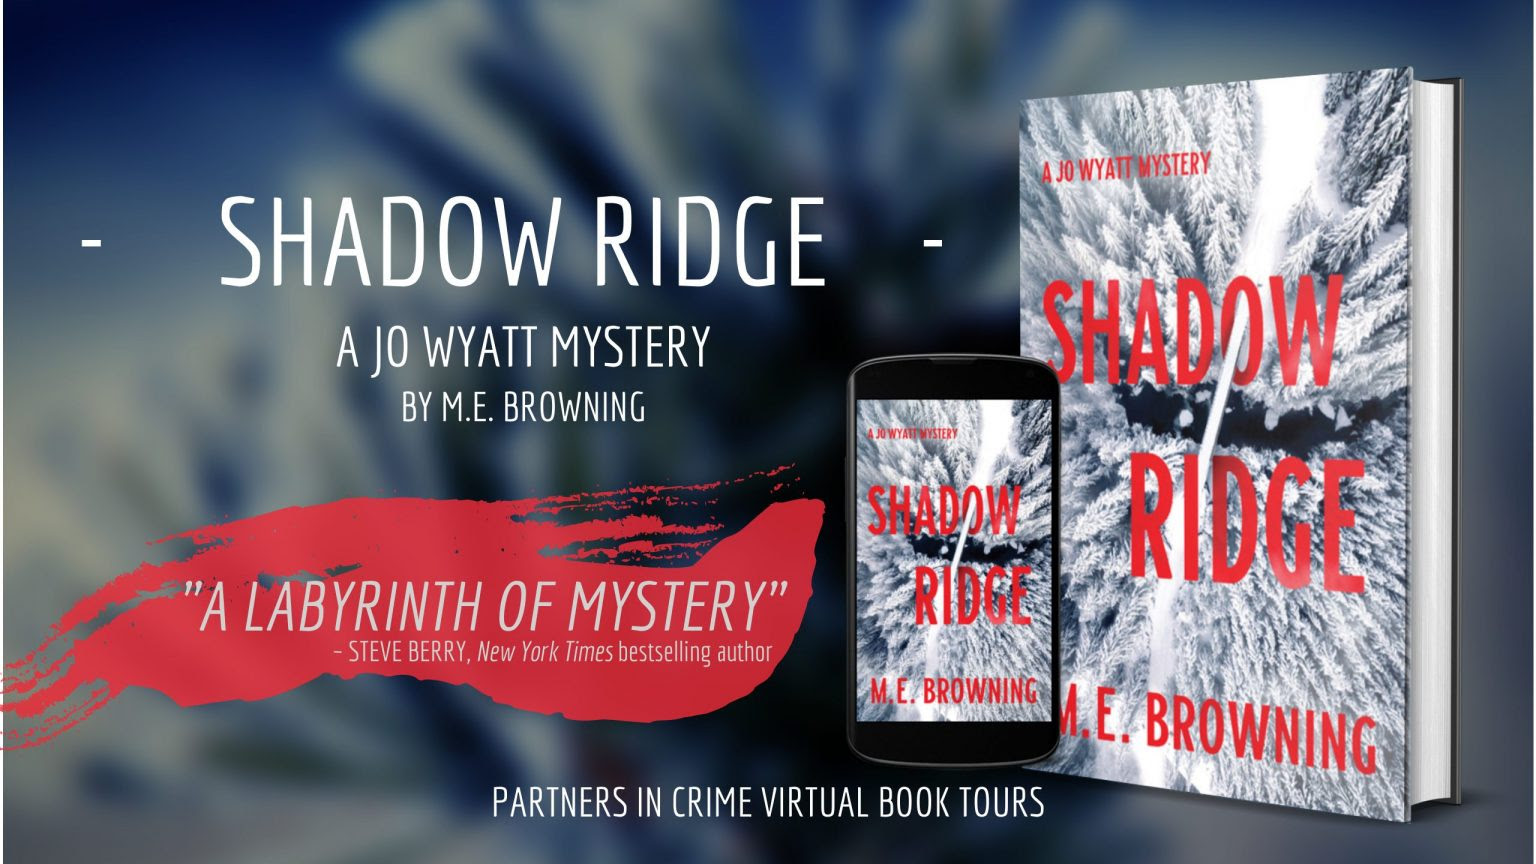 Shadow Ridge by M.E. Browning Banner